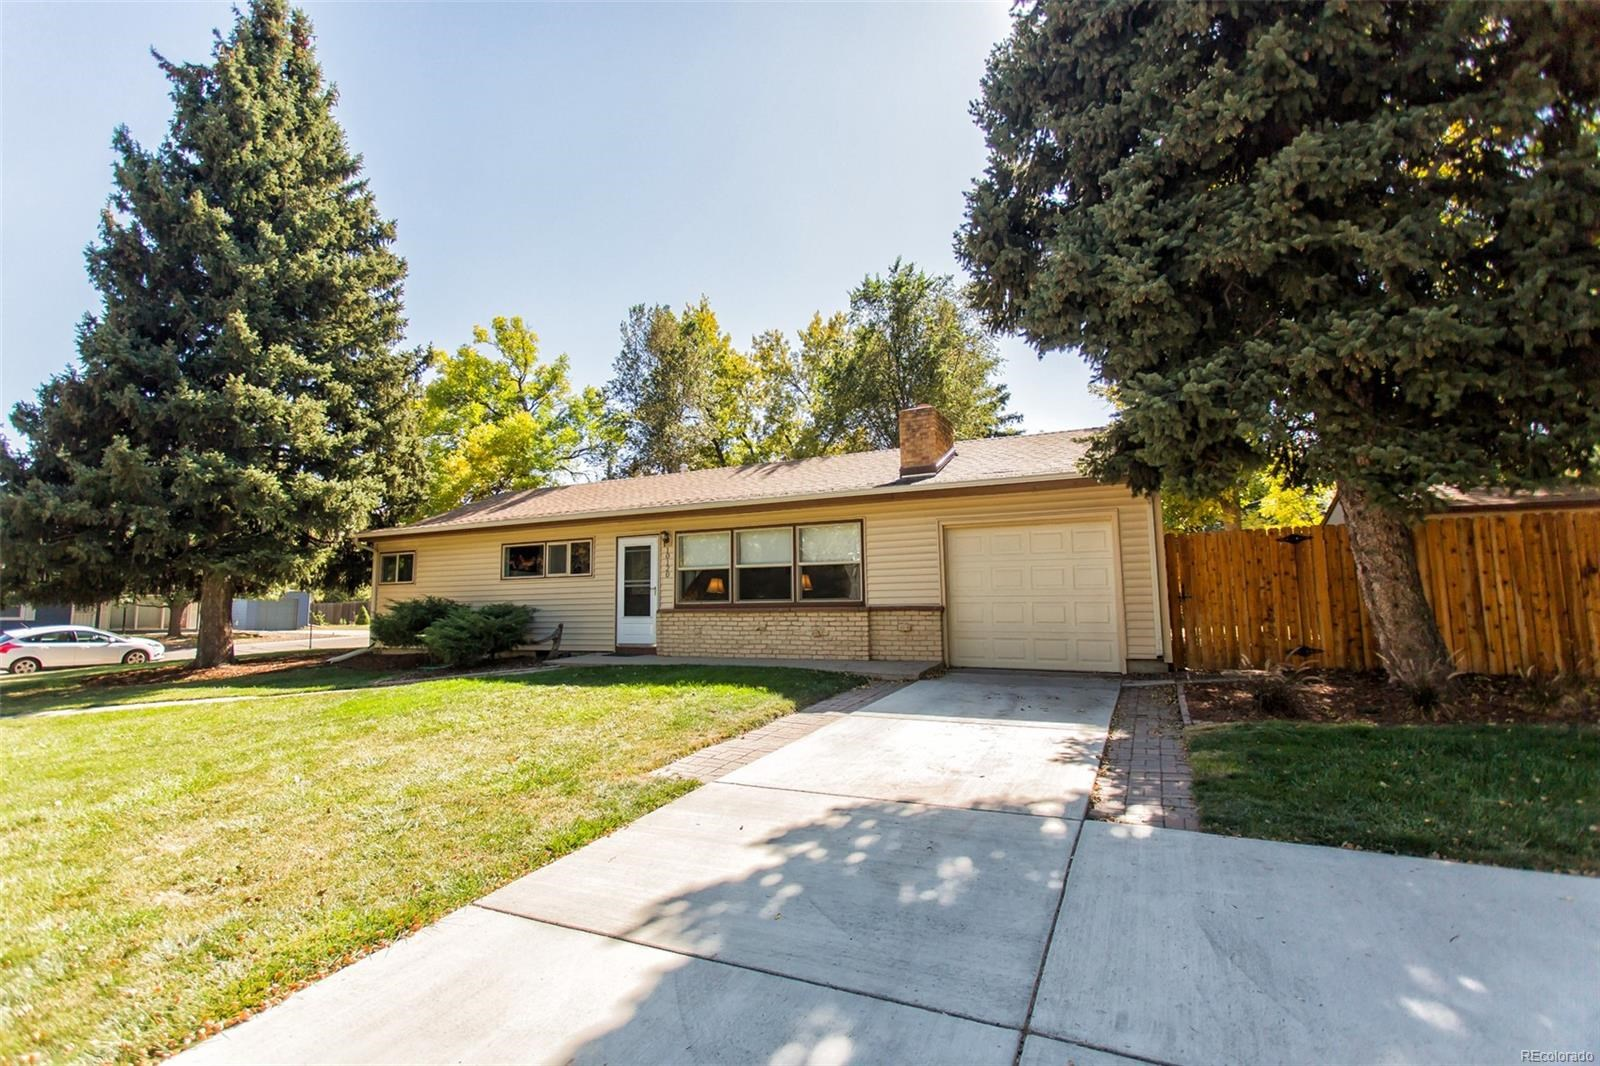 MLS# 1591889 - 1 - 10120 W 8th Place, Lakewood, CO 80215